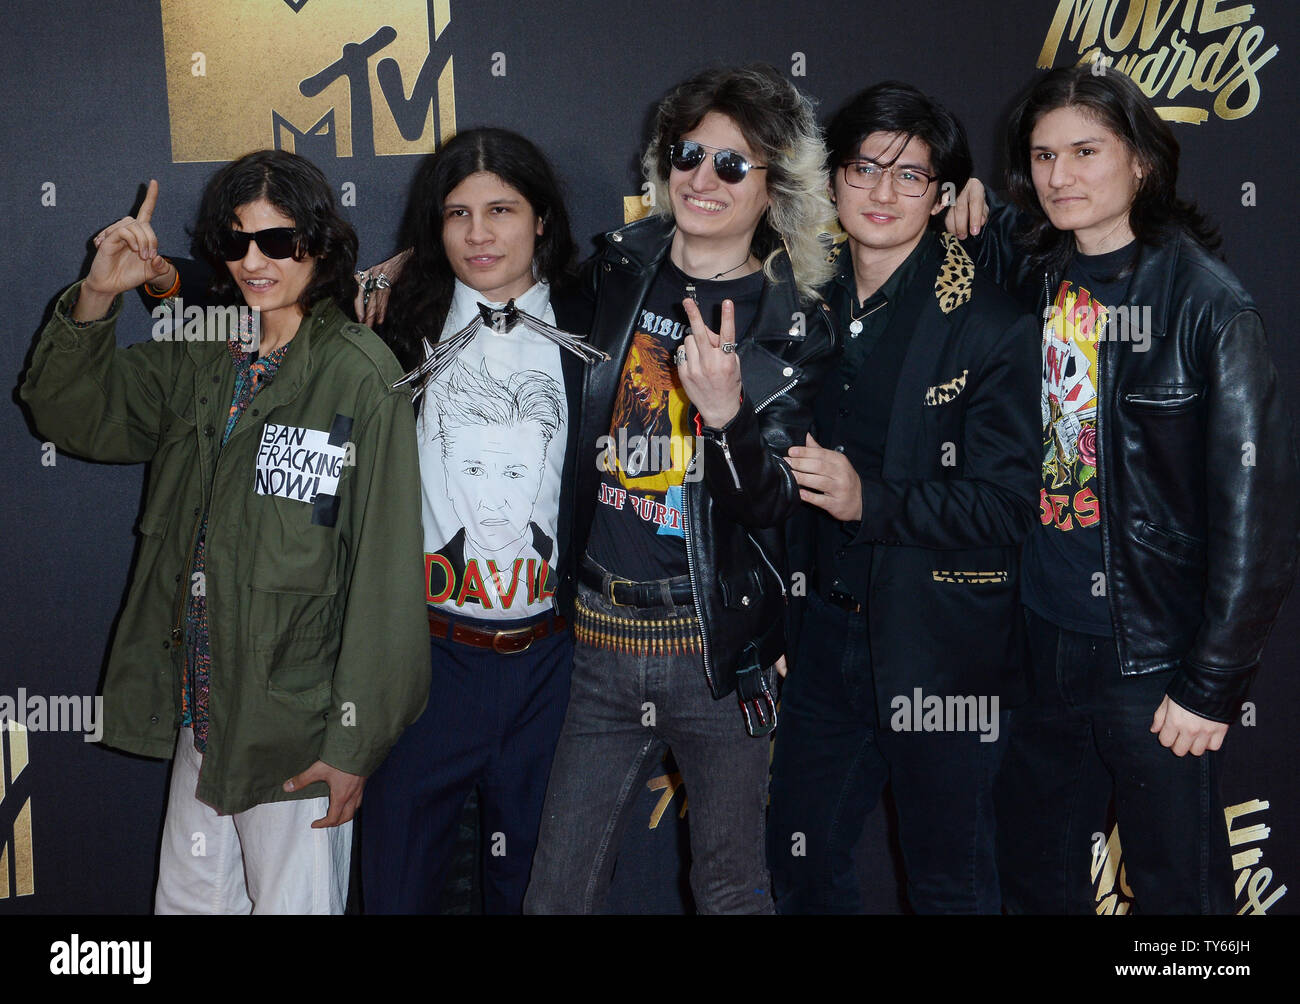 'The Wolfpack' Angulo Brothers attend the MTV Movie Awards at Warner Bros. Studios in Burbank, California on April 9, 2016. The MTV Movie Awards airs Sunday, April 10 at 8pm ET/PT.  Photo by Jim Ruymen/UPI - Stock Image